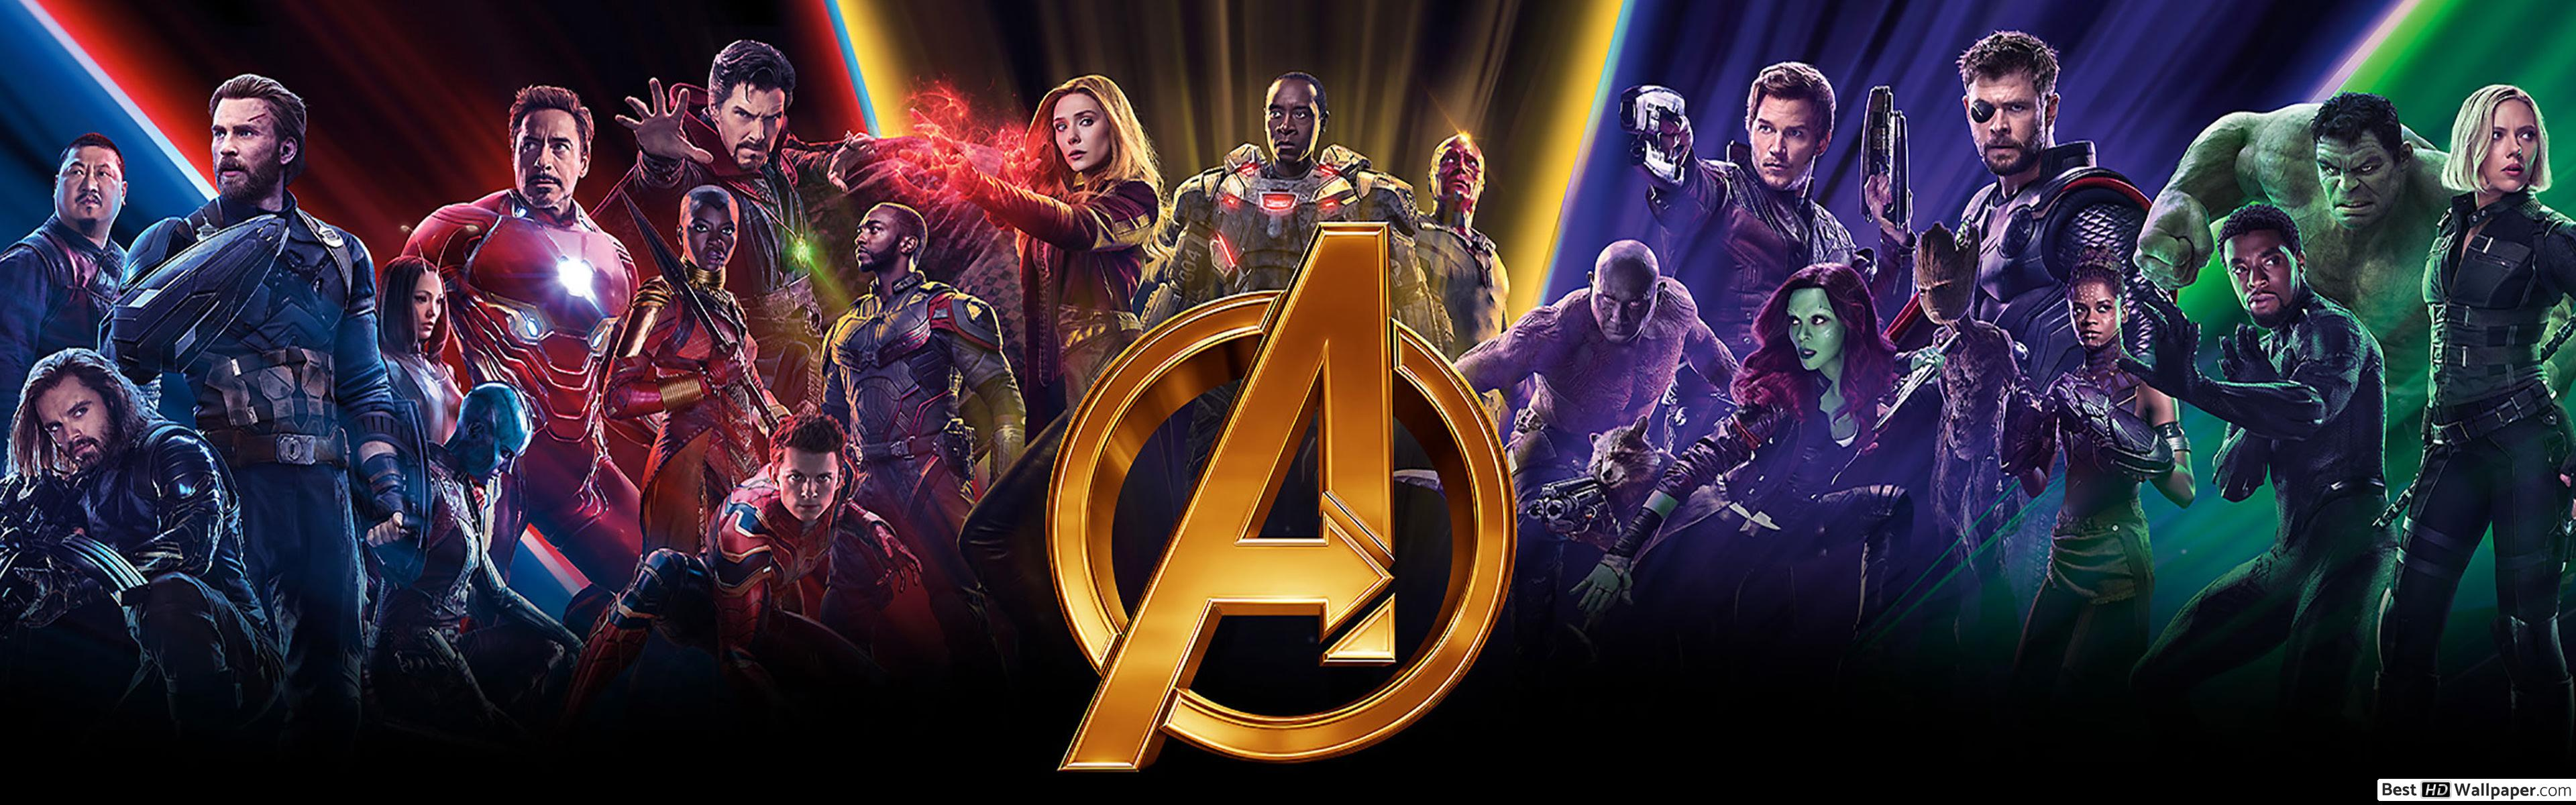 Avengers Endgame Dual Screen Wallpaper Posted By Michelle Sellers